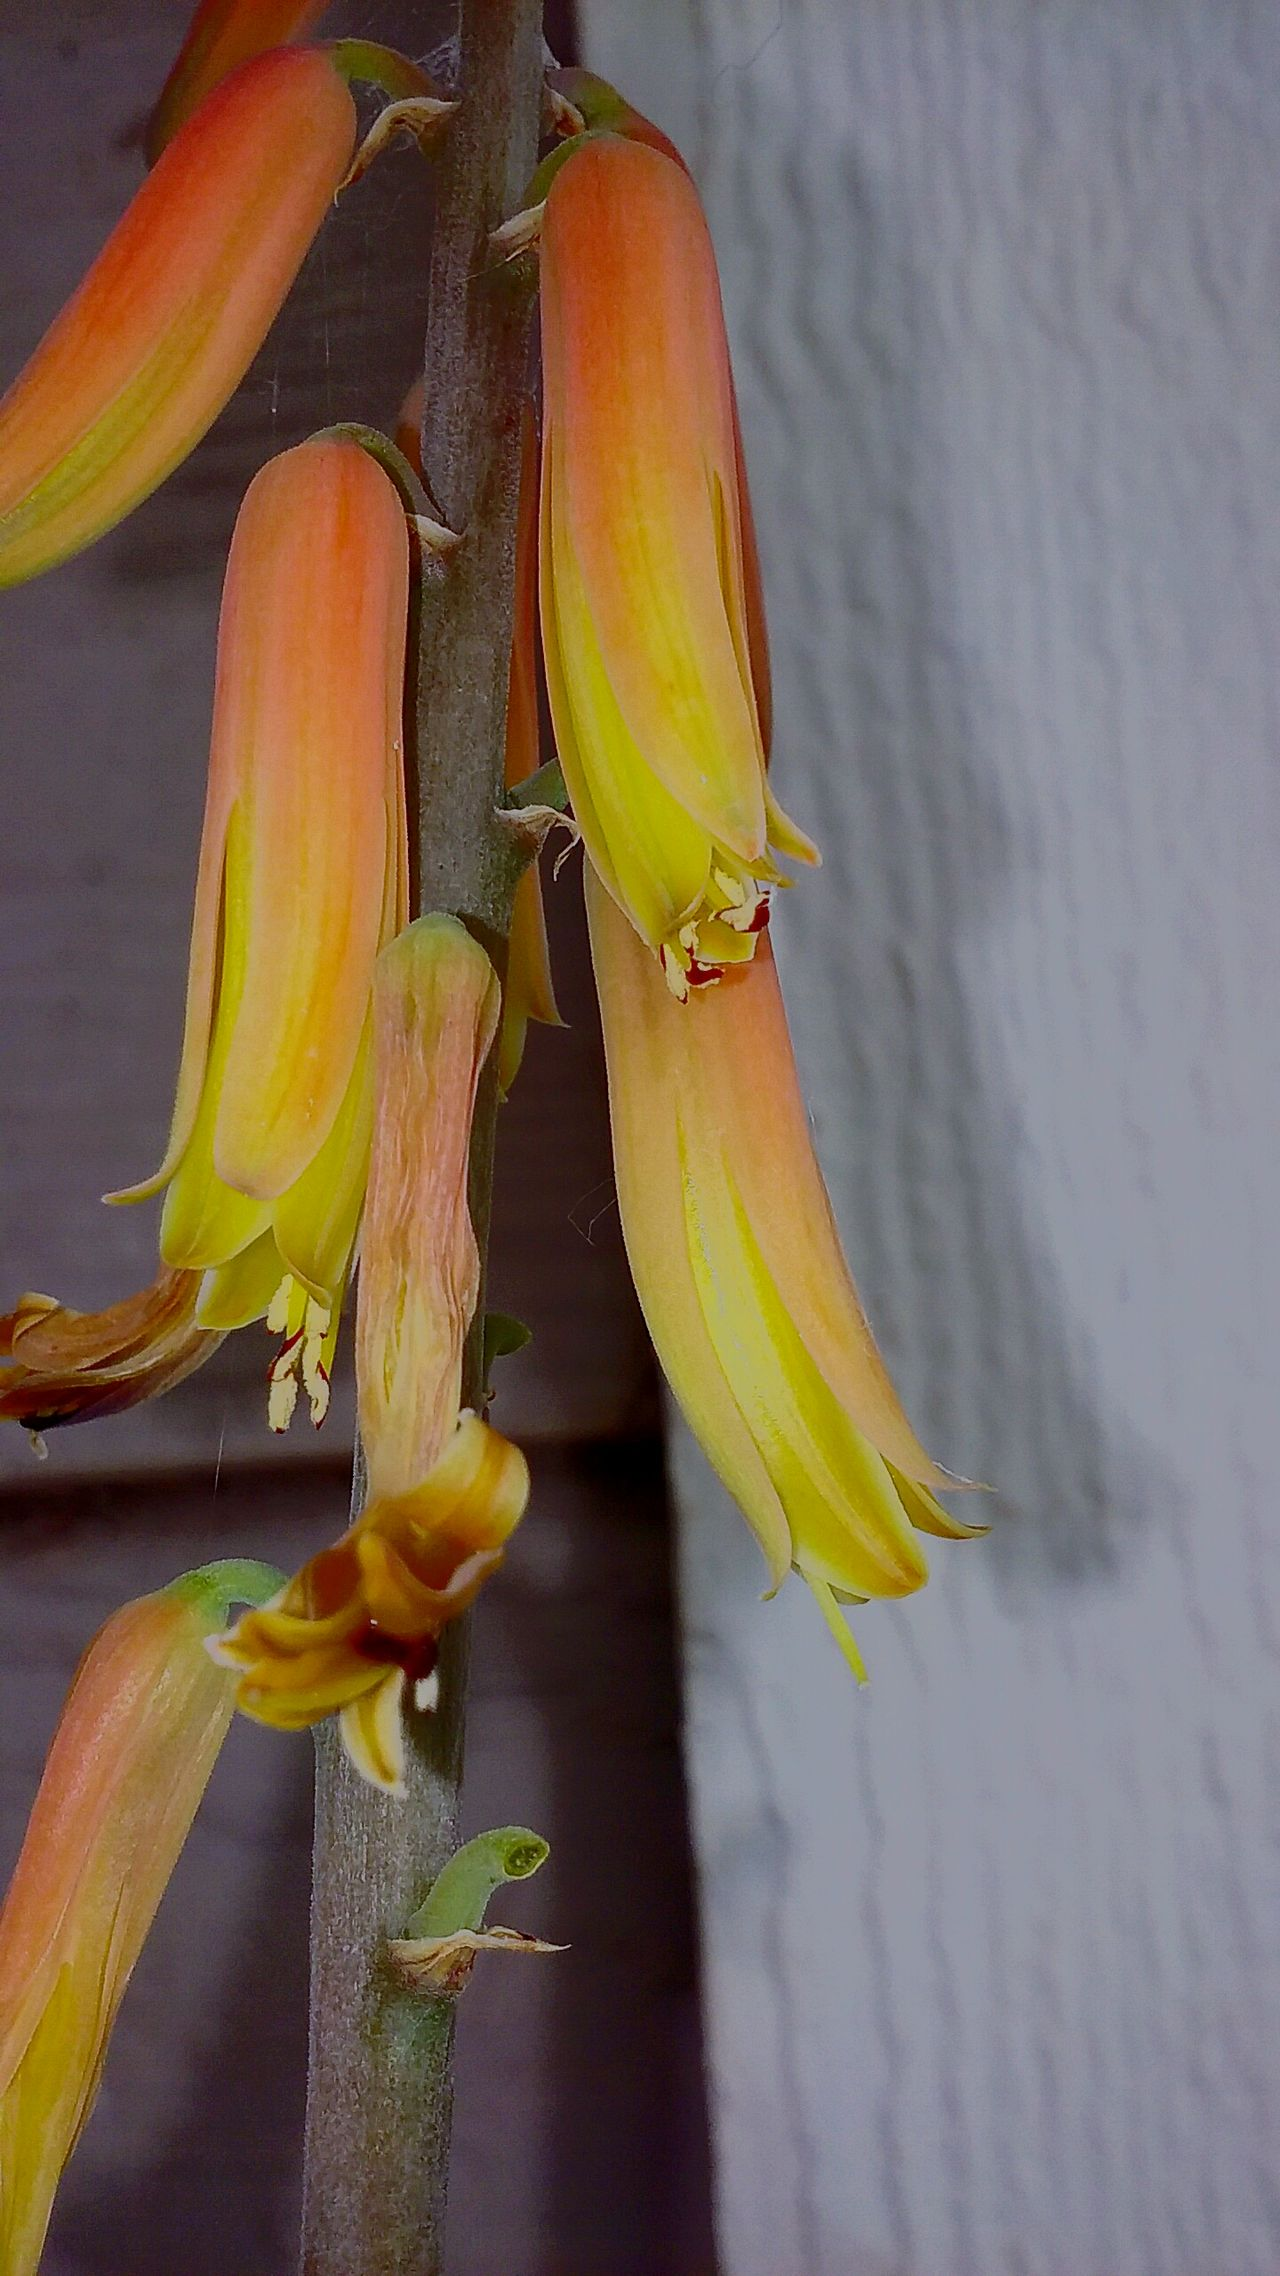 43 Golden Moments Gold Aloe Vera Flower Taking Photos Check This Out Hello World Enjoying Life Fragility Selective Focus Plant Beauty In Nature Showcase:July Growth Aloe Vera Bloom Outdoors Nature Close-up Taking Photos Showcase July